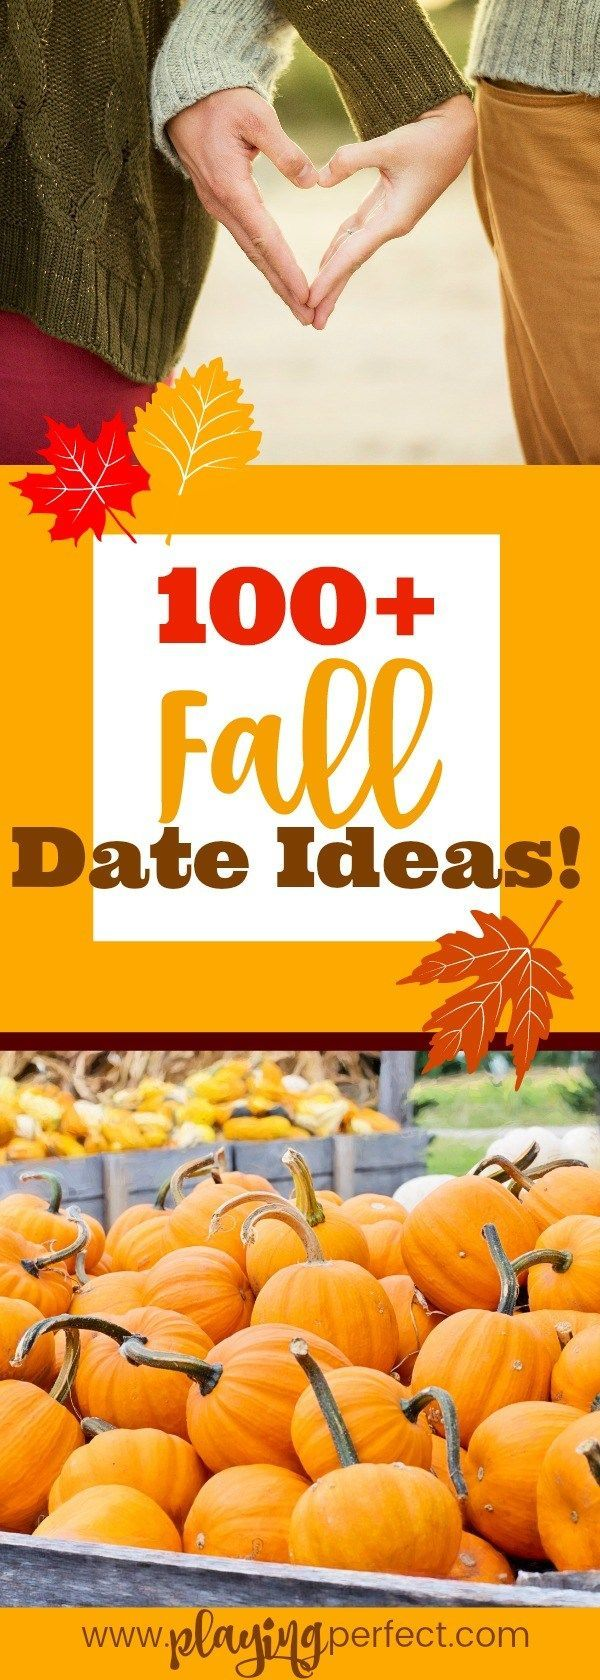 Fall is the ultimate time to fall more in love! If you are newly dating or have been in love for decades and are looking for ways to spice up your marriage, these fall date ideas are for you! If you're hoping to have the best fall dates ever this fall, get ready! Here are over 100 of the best fall date ideas ever! Grab your loved one, snuggle up, and make this fall dating season awesome! Fall dates to remember, here we come! FREE printable! | playingperfect.com